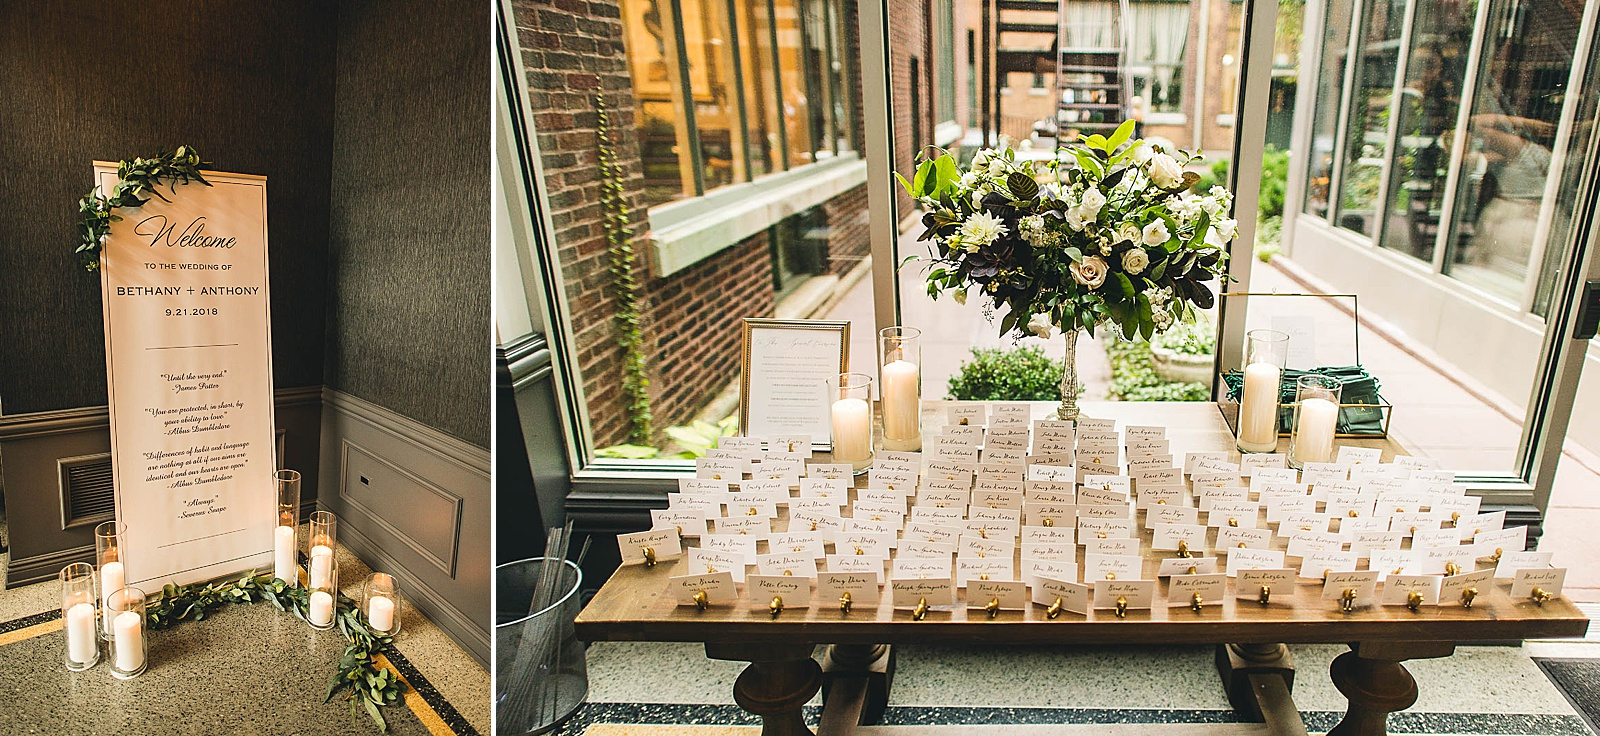 33 ivy room details - Ivy Room Chicago Wedding Photos // Bethany + Anthony